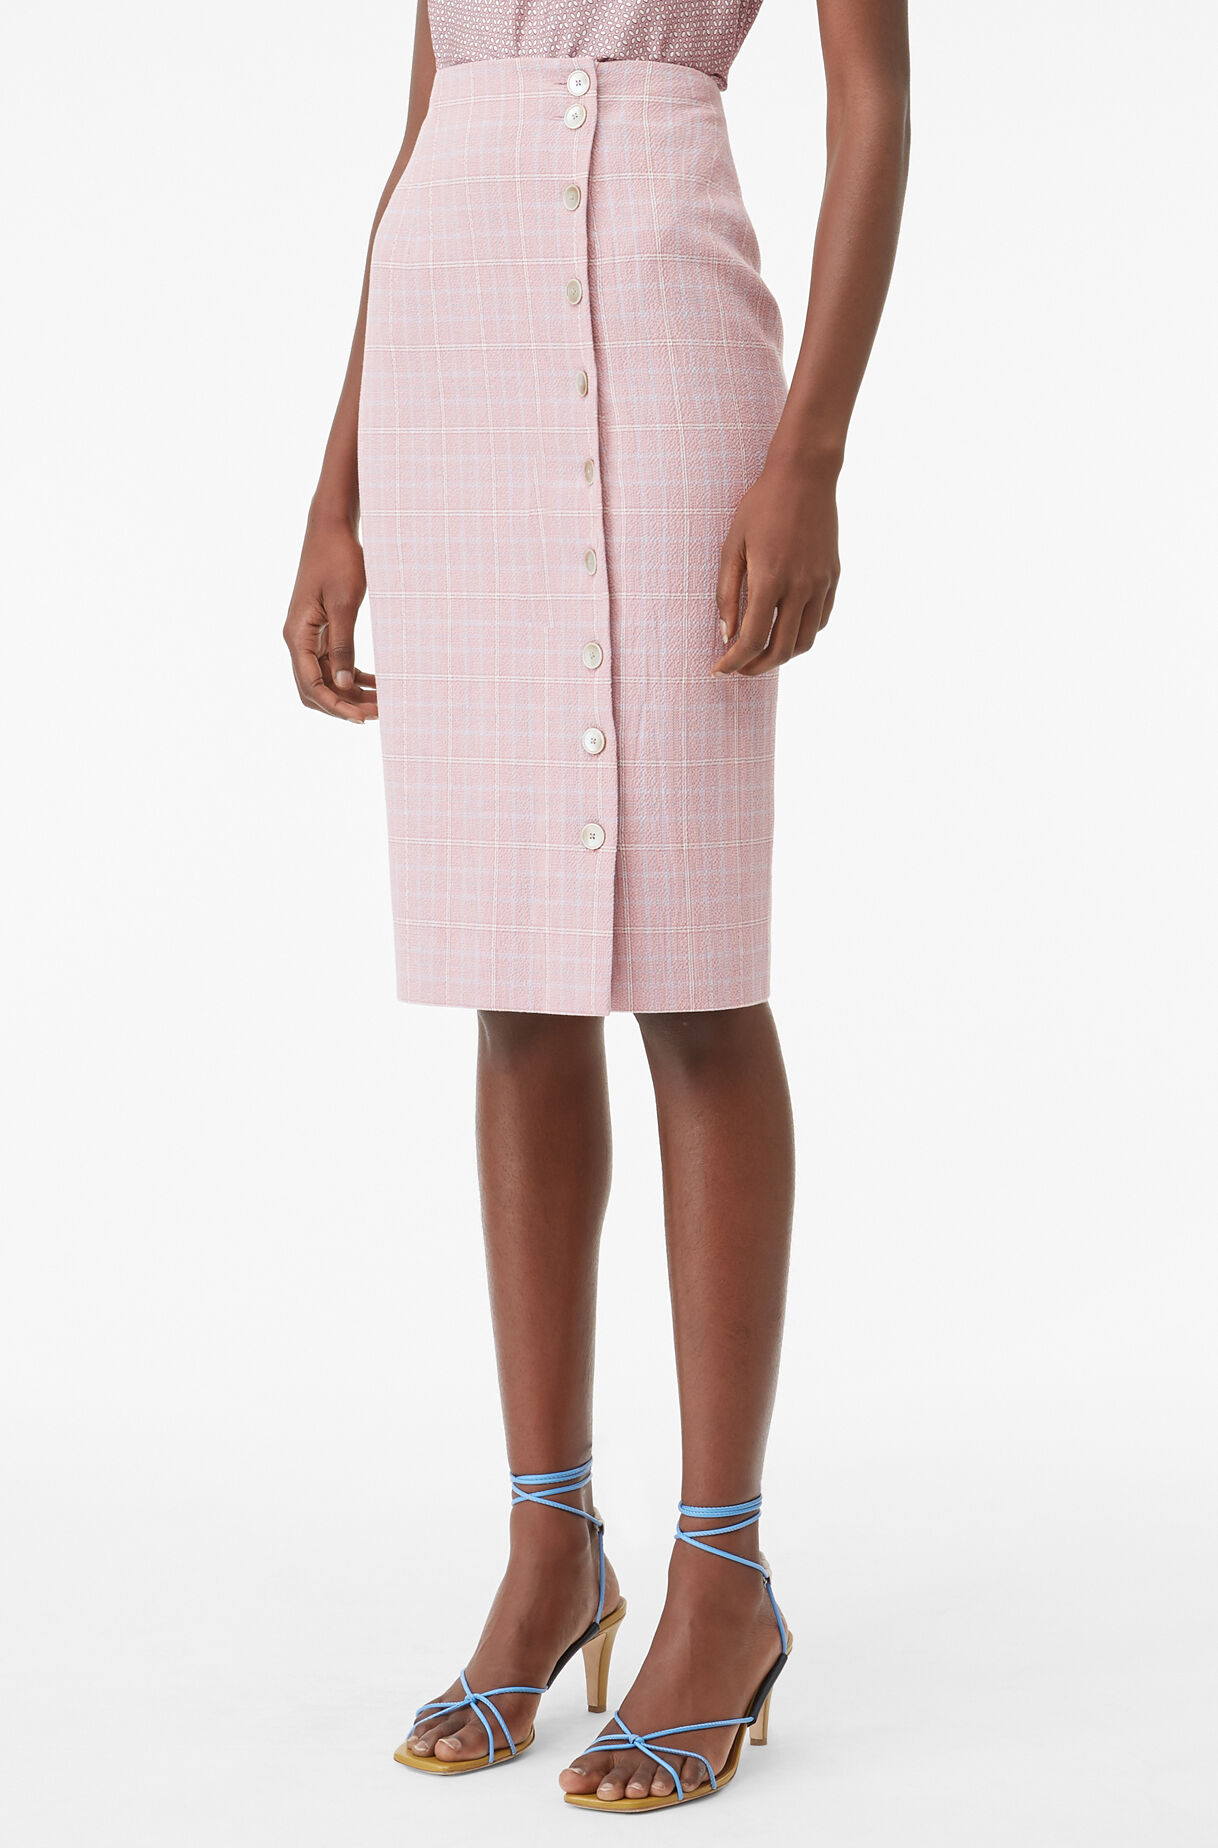 Tailored Rose Plaid Suiting Skirt, , large